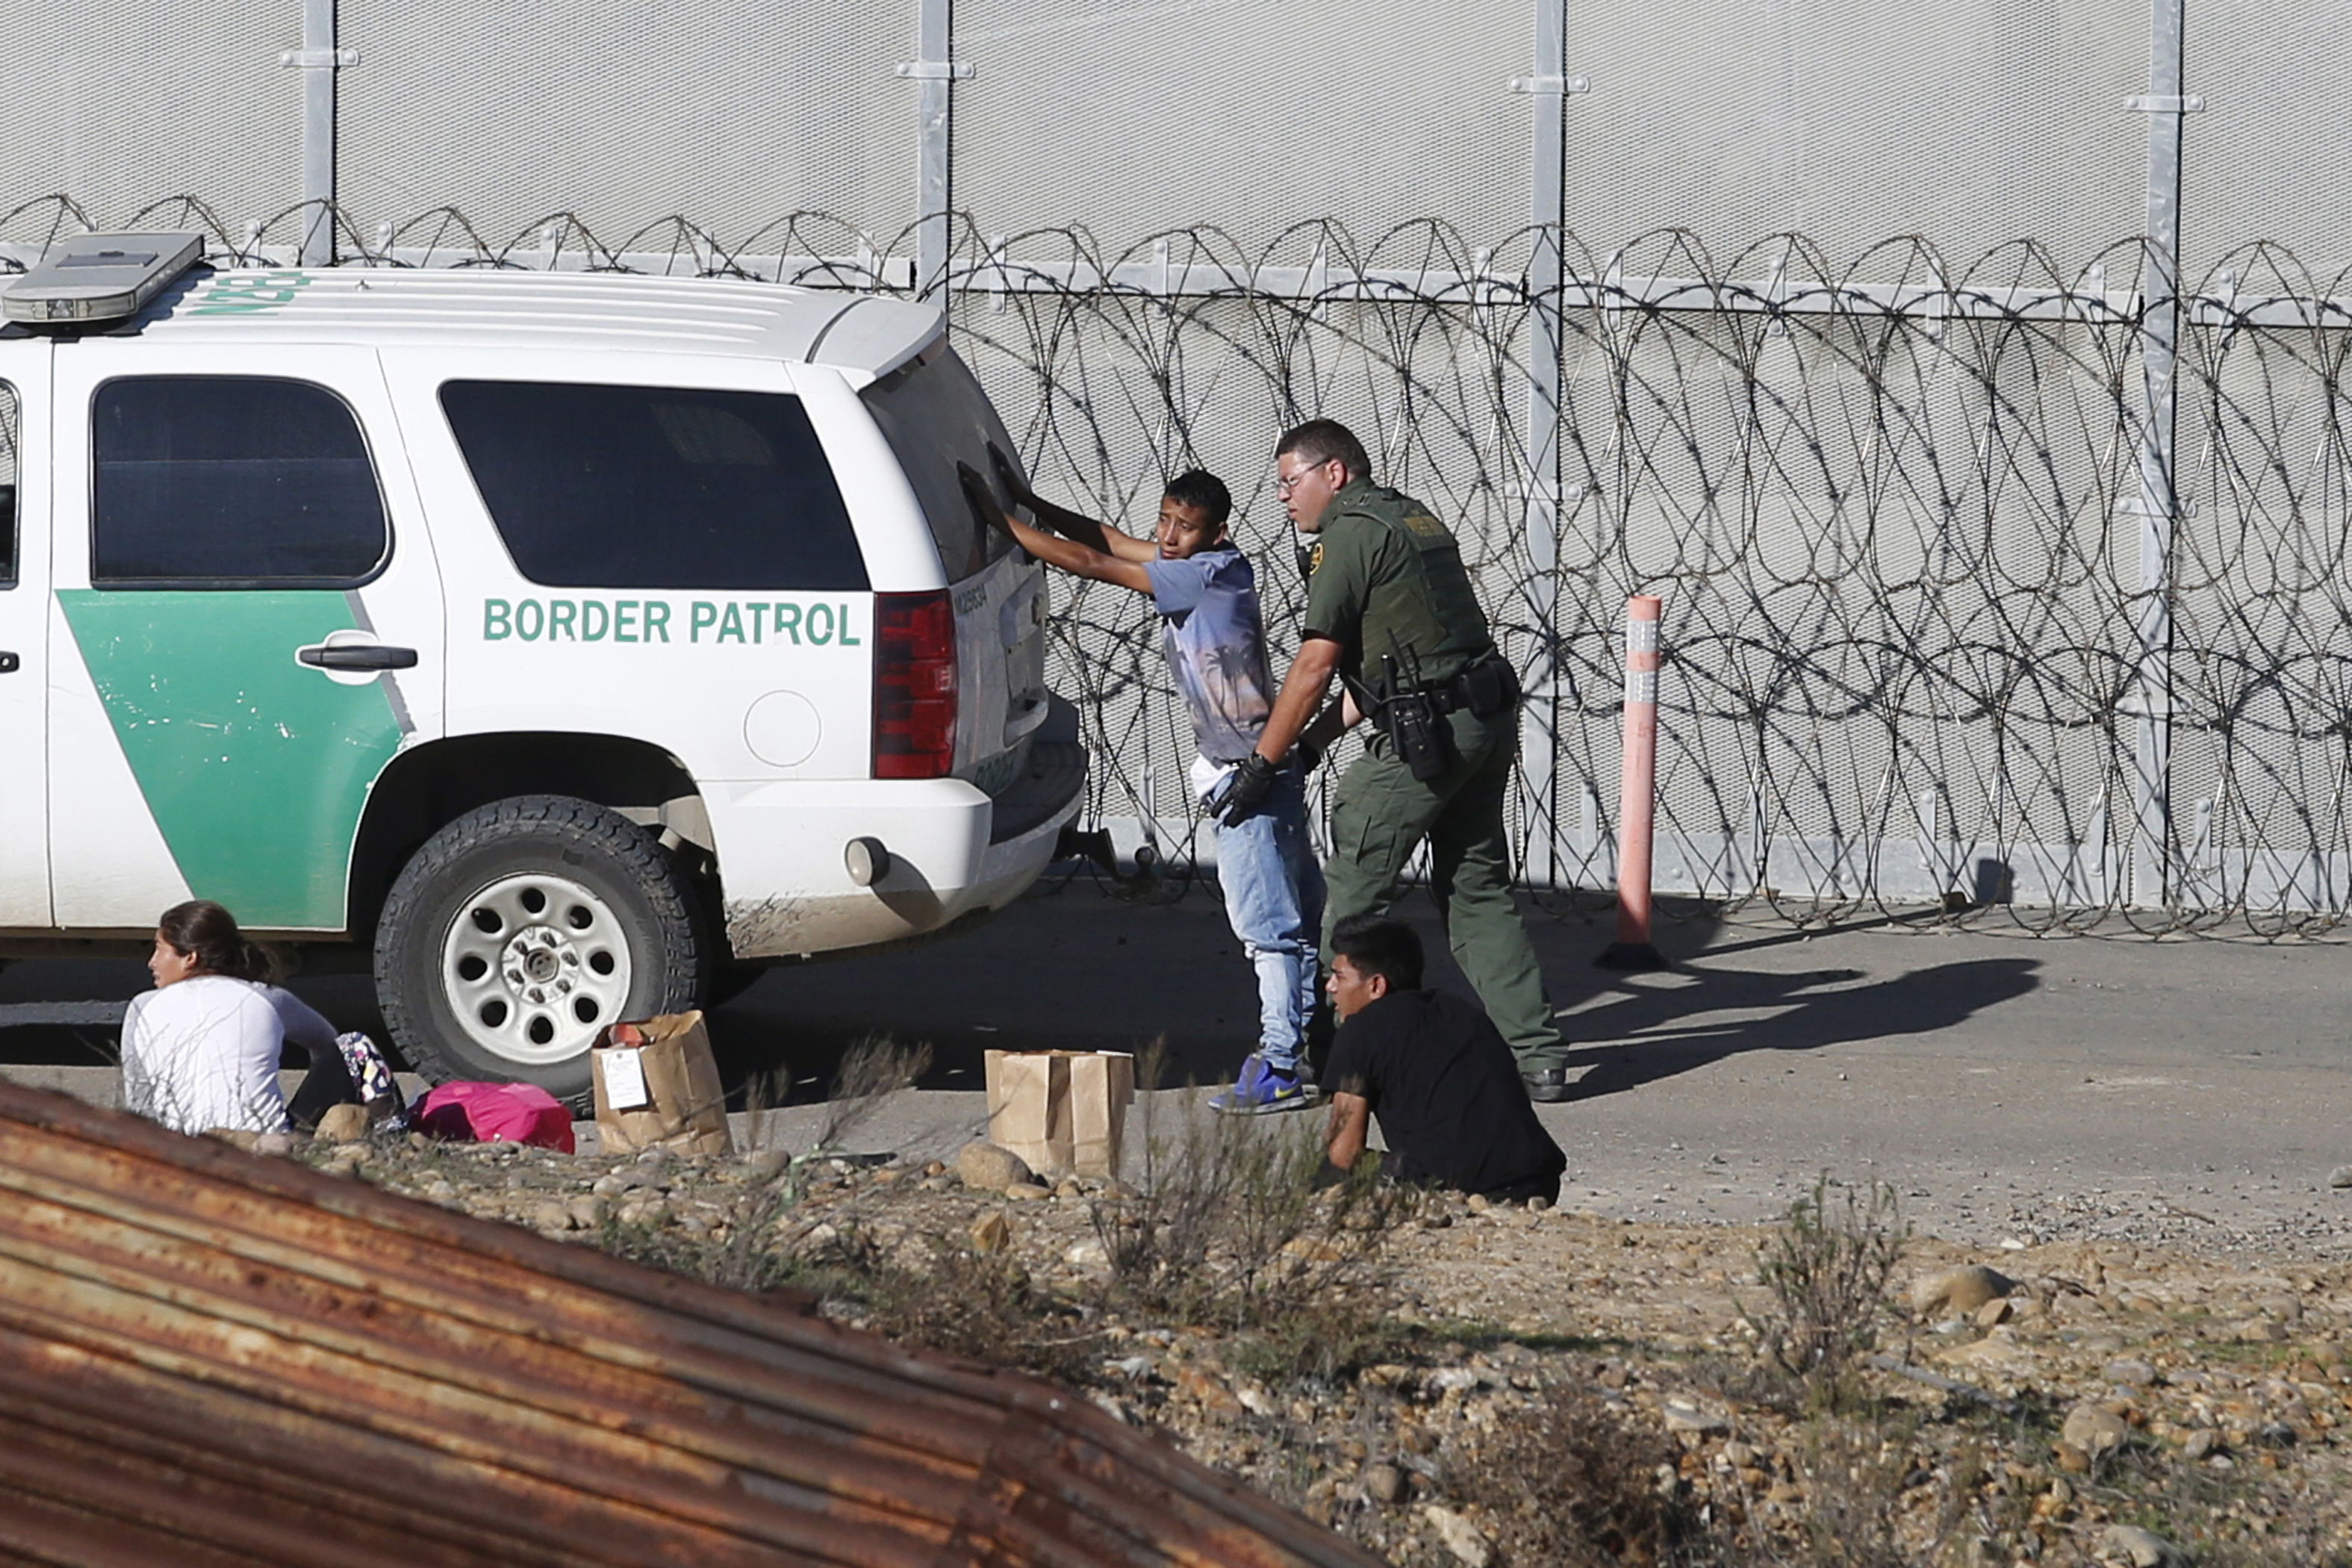 Westlake Legal Group AP19107045283882 Border Patrol official to Congress: 'We can't arrest our way out of this problem' Greg Norman fox-news/us/immigration fox-news/topic/fox-news-flash fox news fnc/us fnc e0d94556-96ea-51e0-b09f-2c9cff904544 article